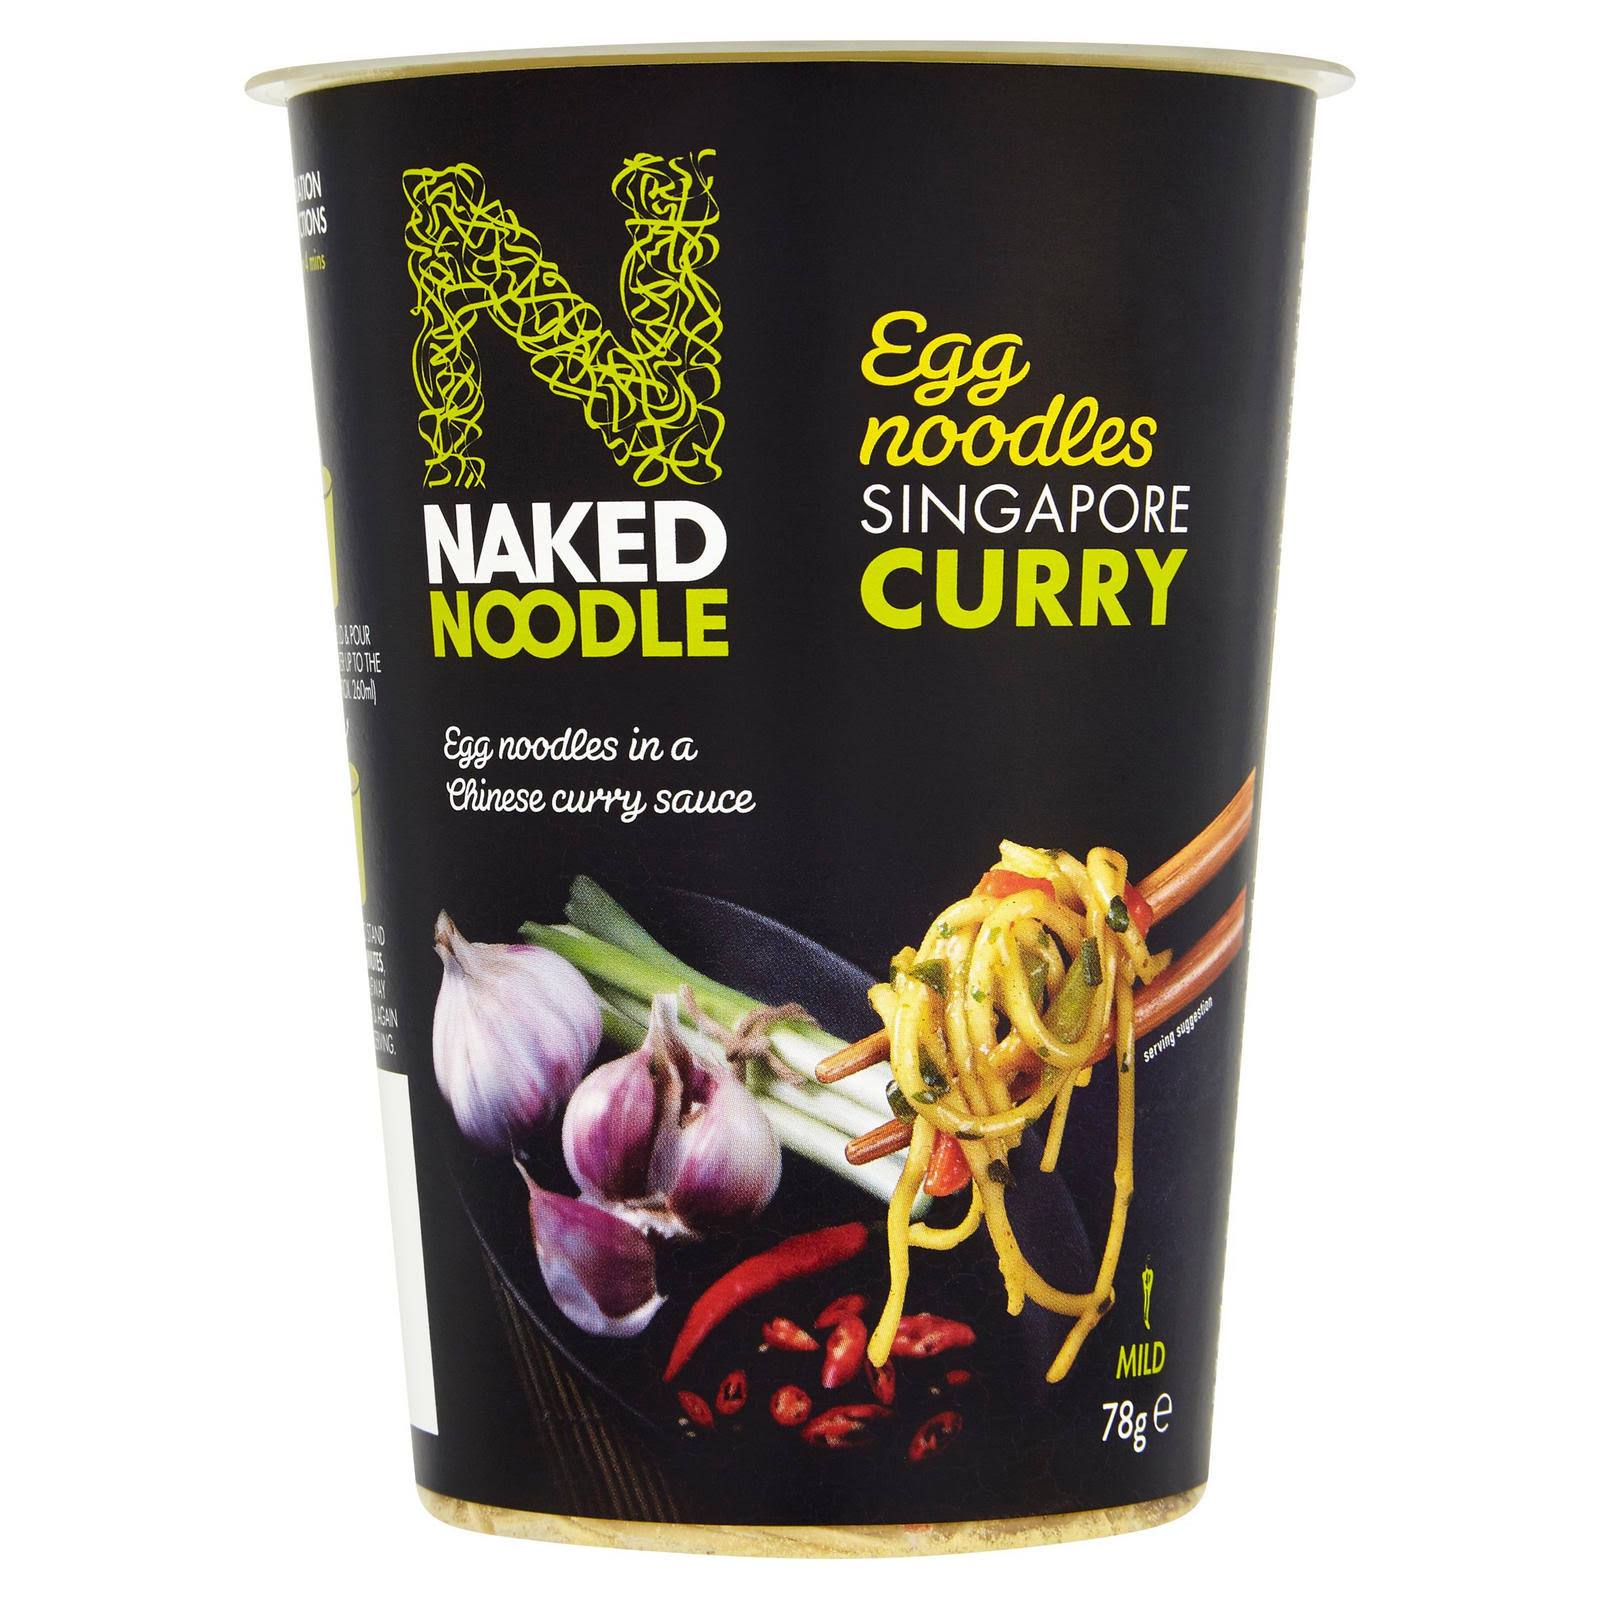 Naked Noodle Egg Noodles - Singapore Curry, 78g